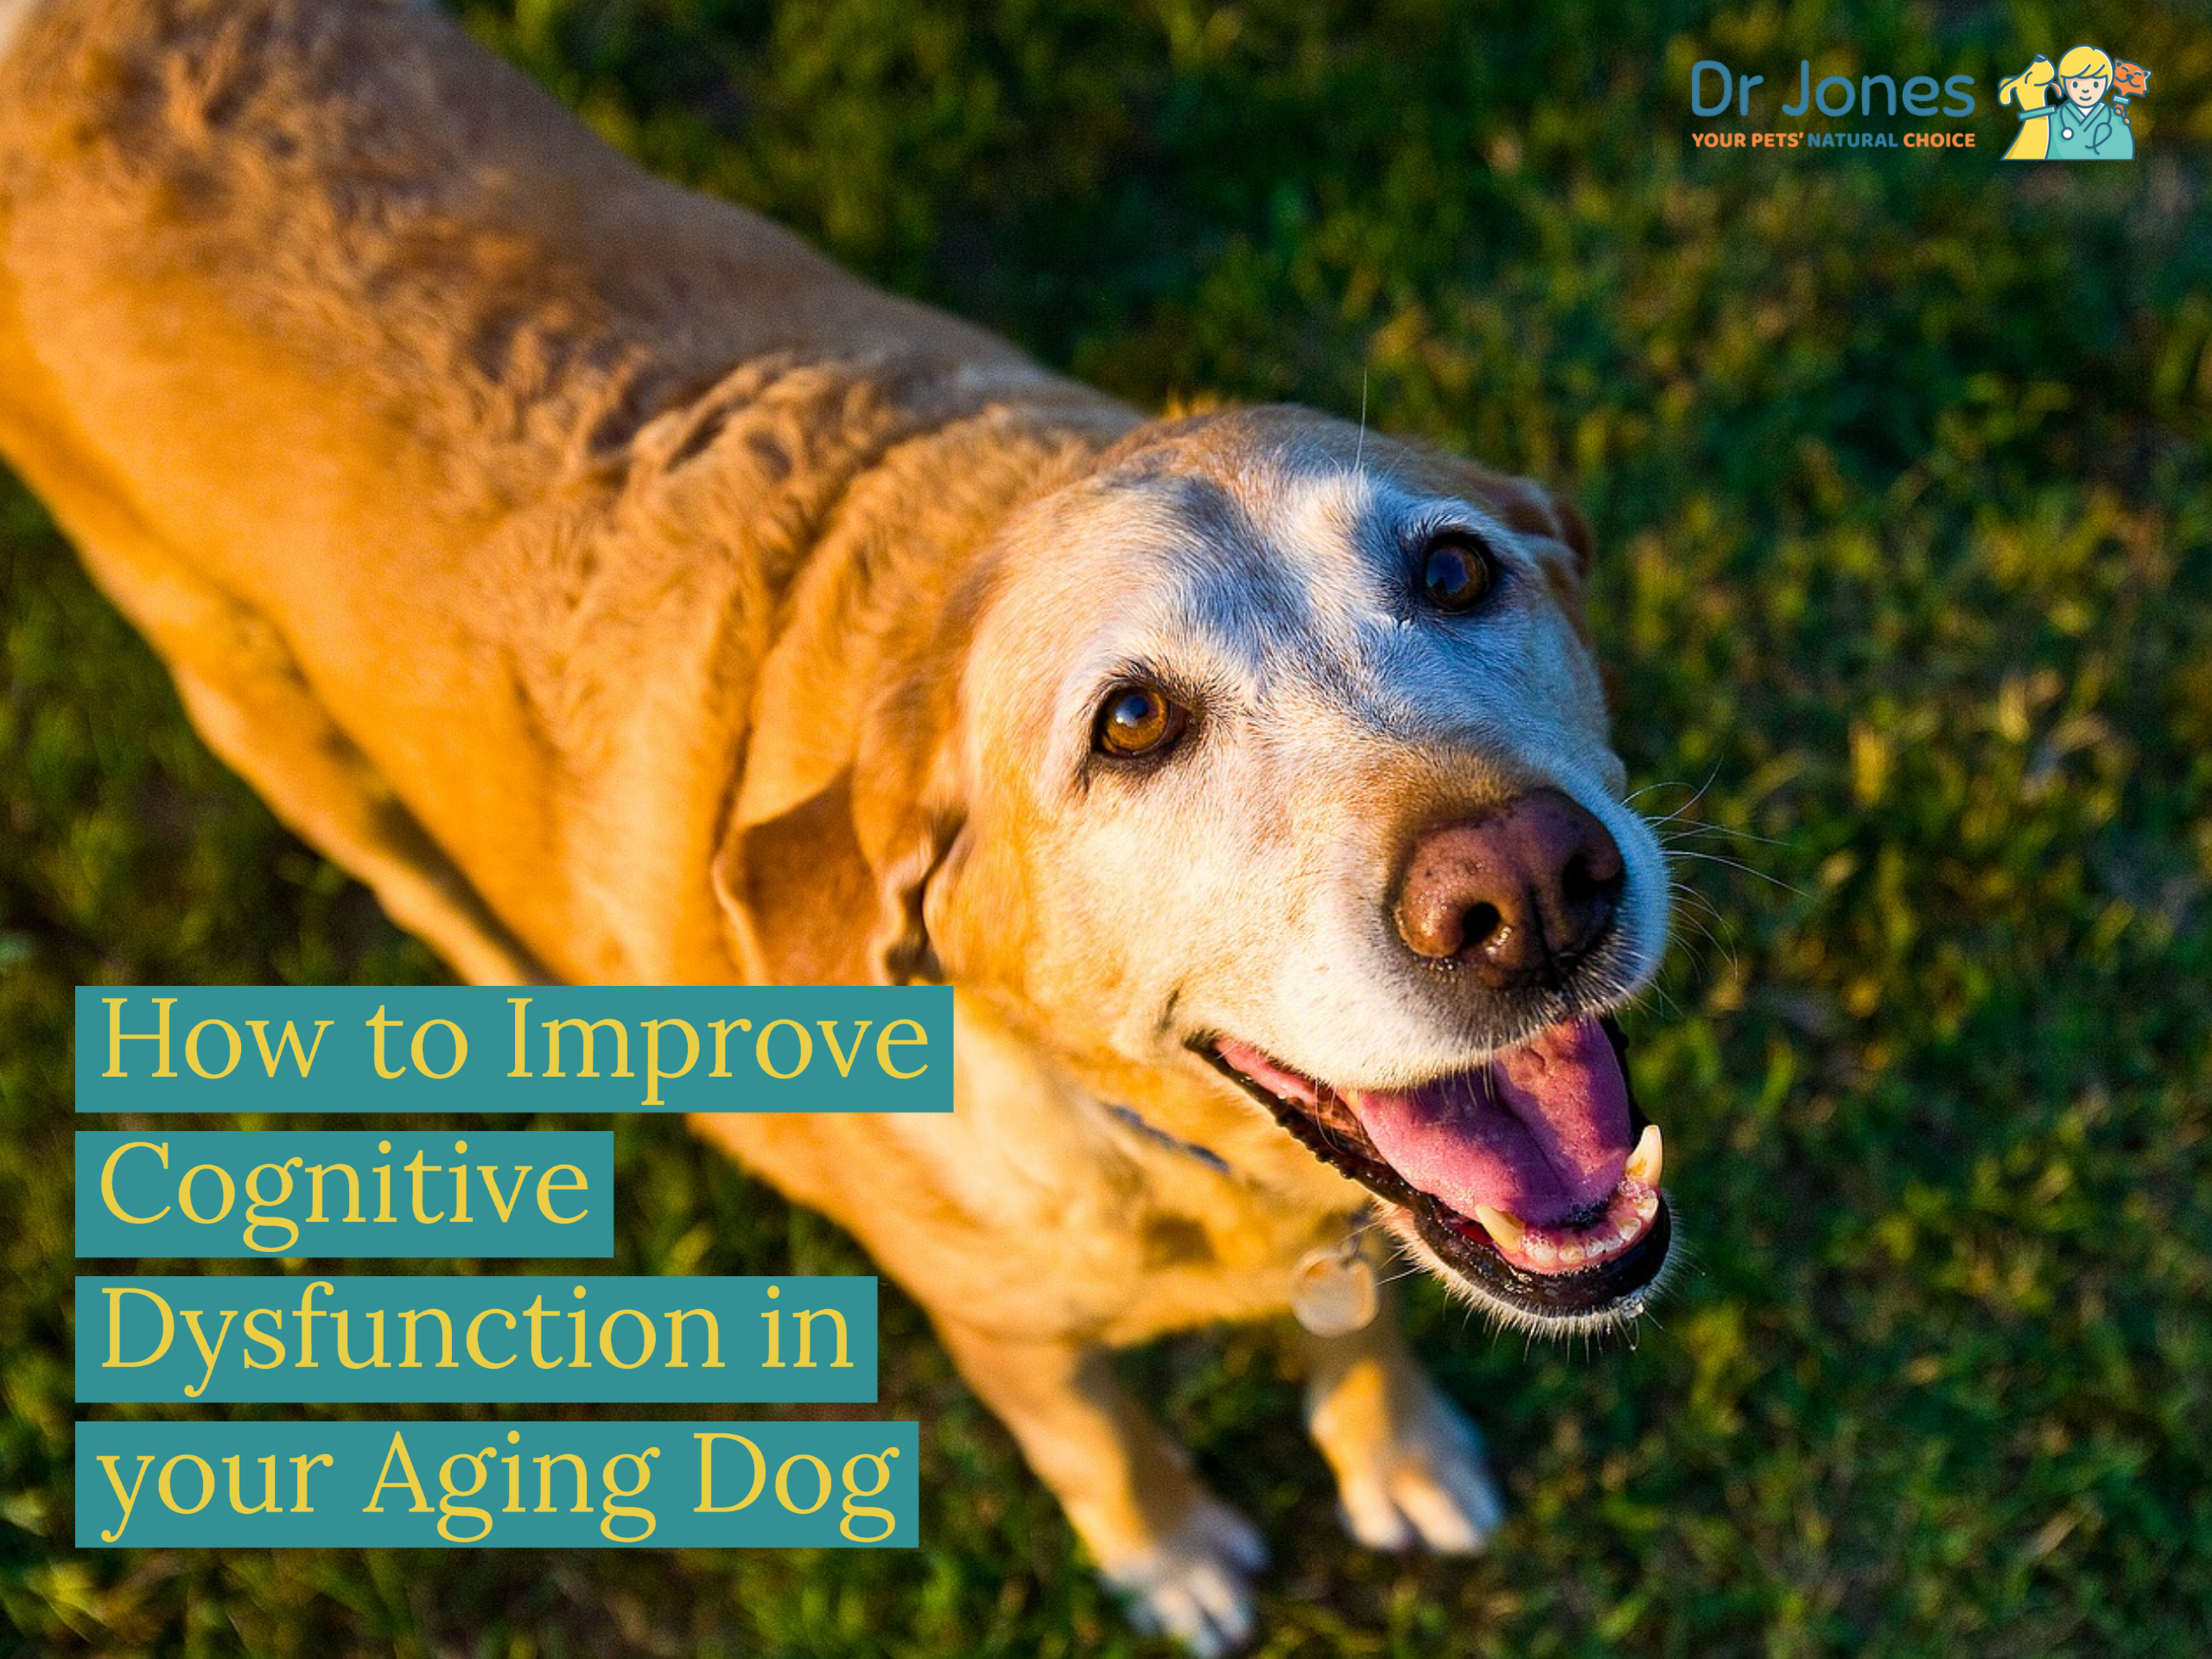 How to Improve Cognitive Dysfunction in your Aging Dog